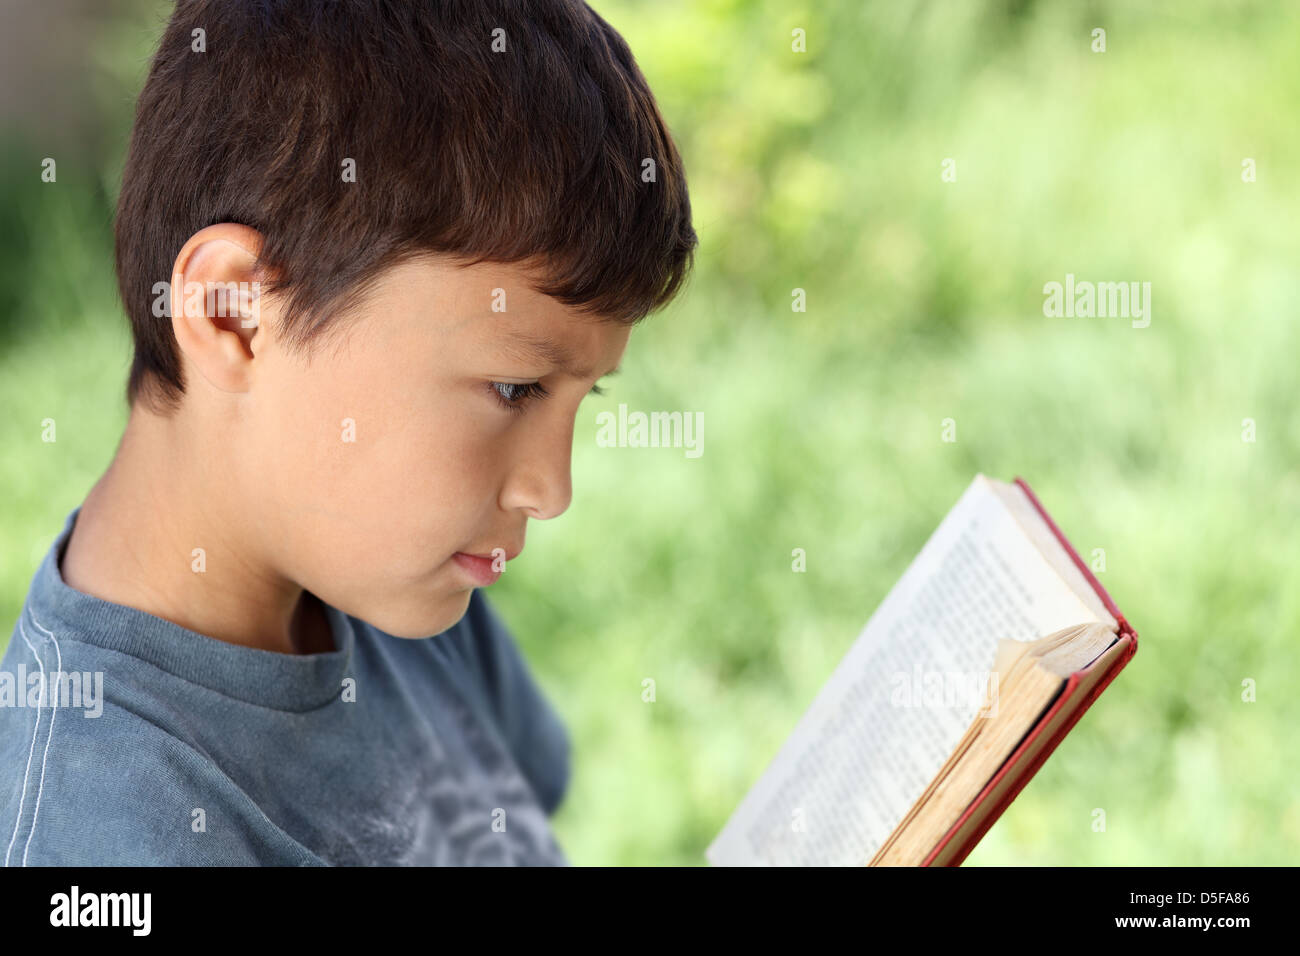 Young boy reading book outside with natural green background and shallow depth of field - with copy space to right - Stock Image